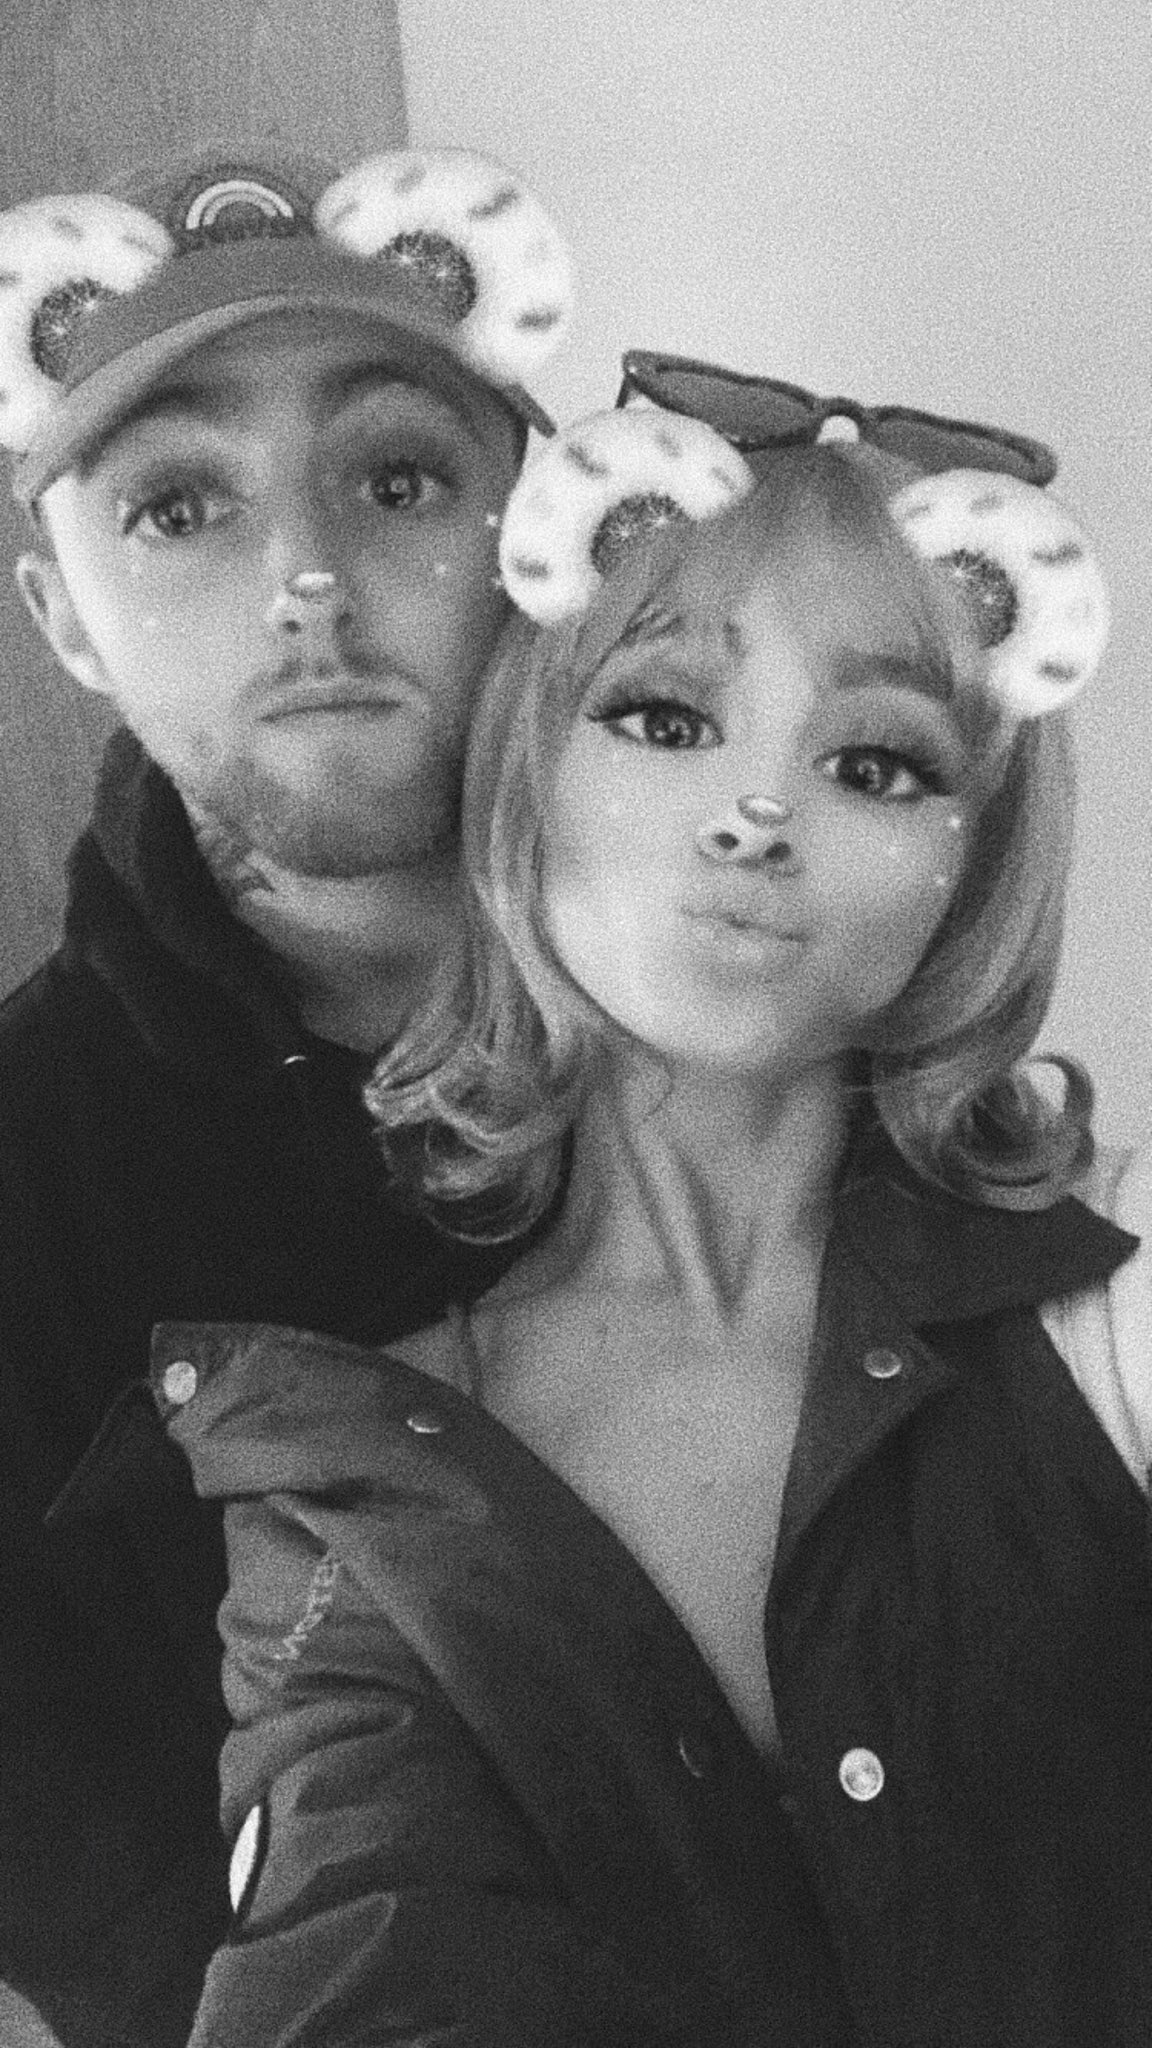 So in love with @MacMiller + @ArianaGrande �� https://t.co/lbmL8y4lwR